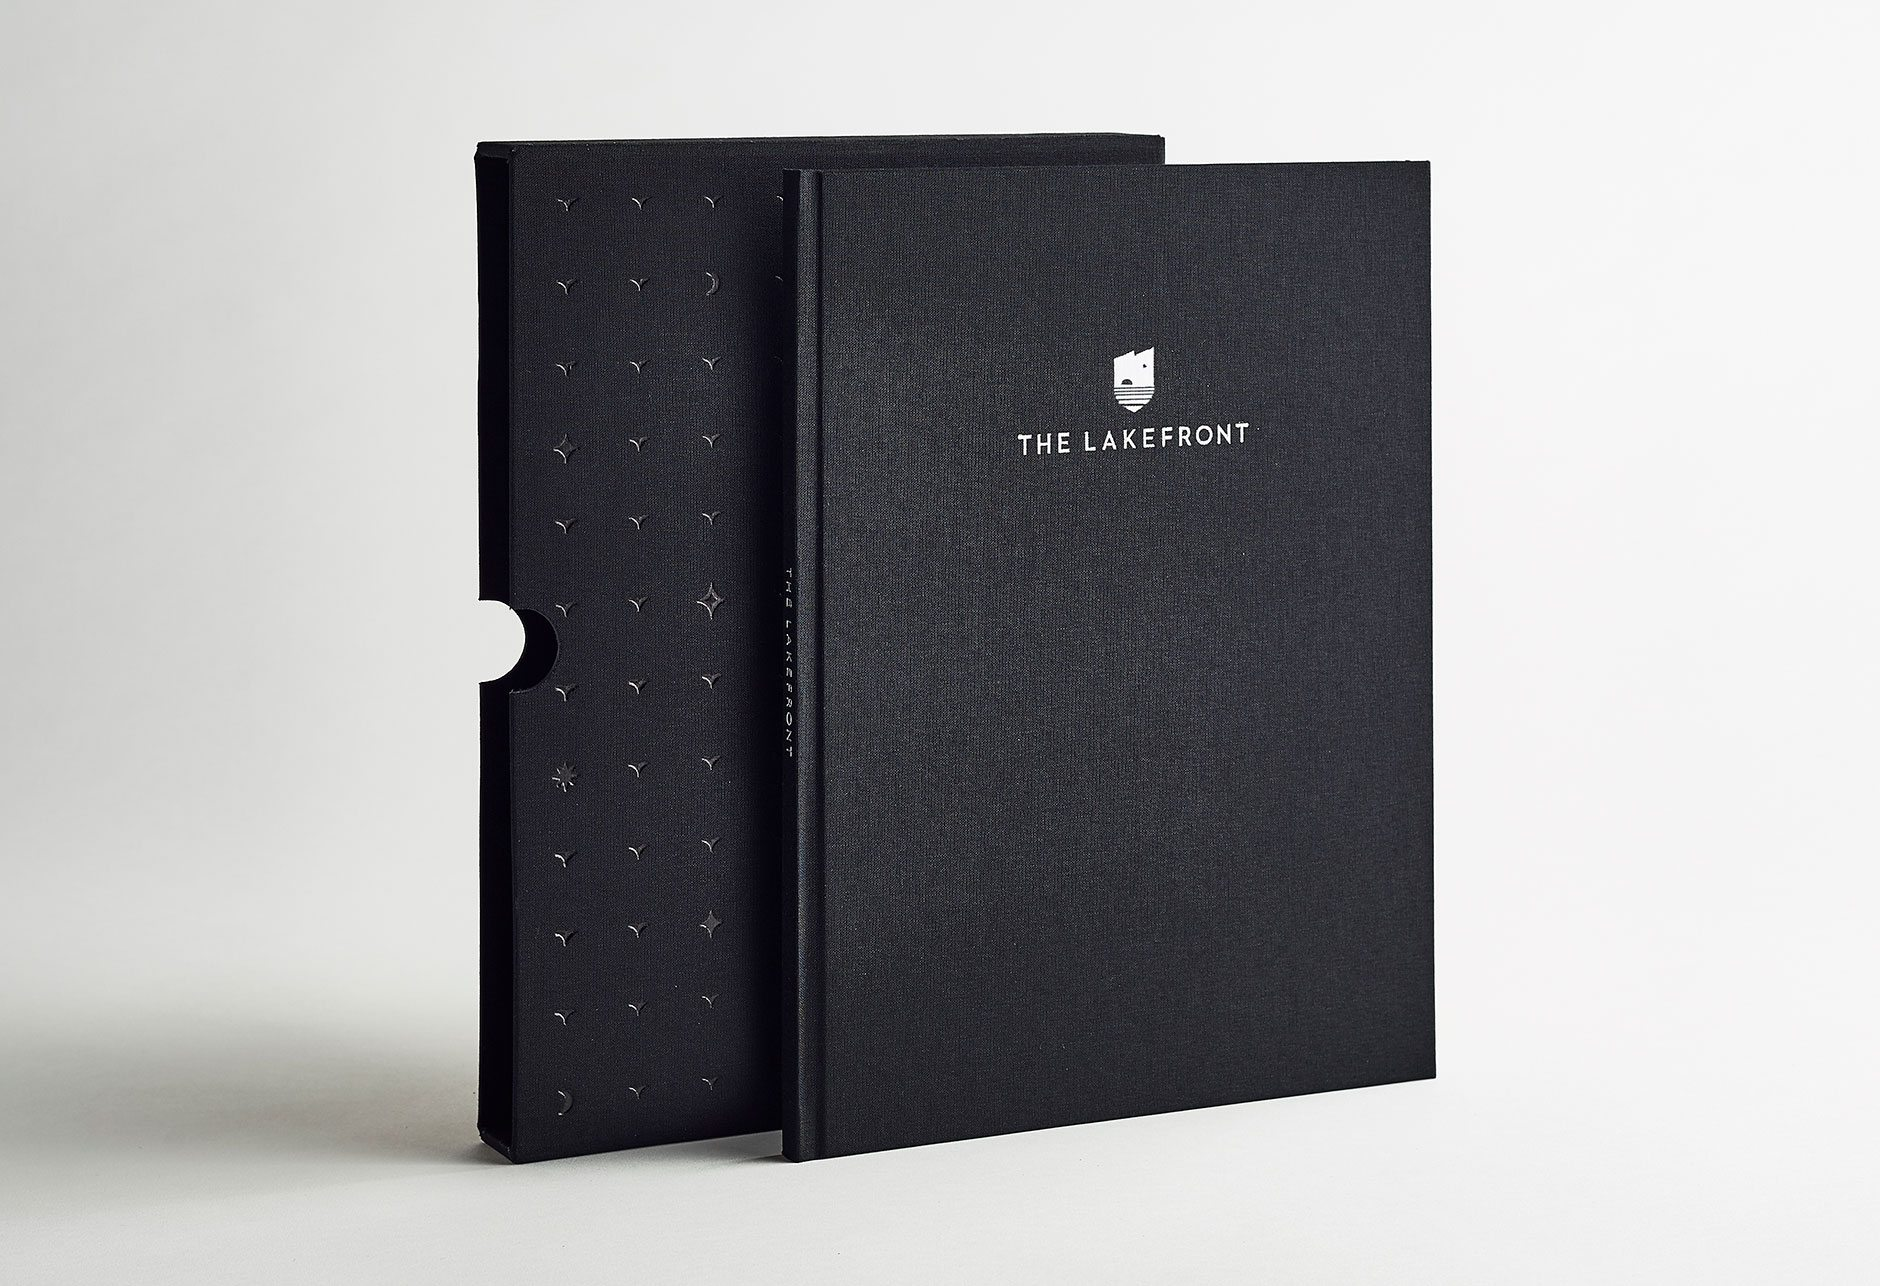 The Lakefront Brochure box